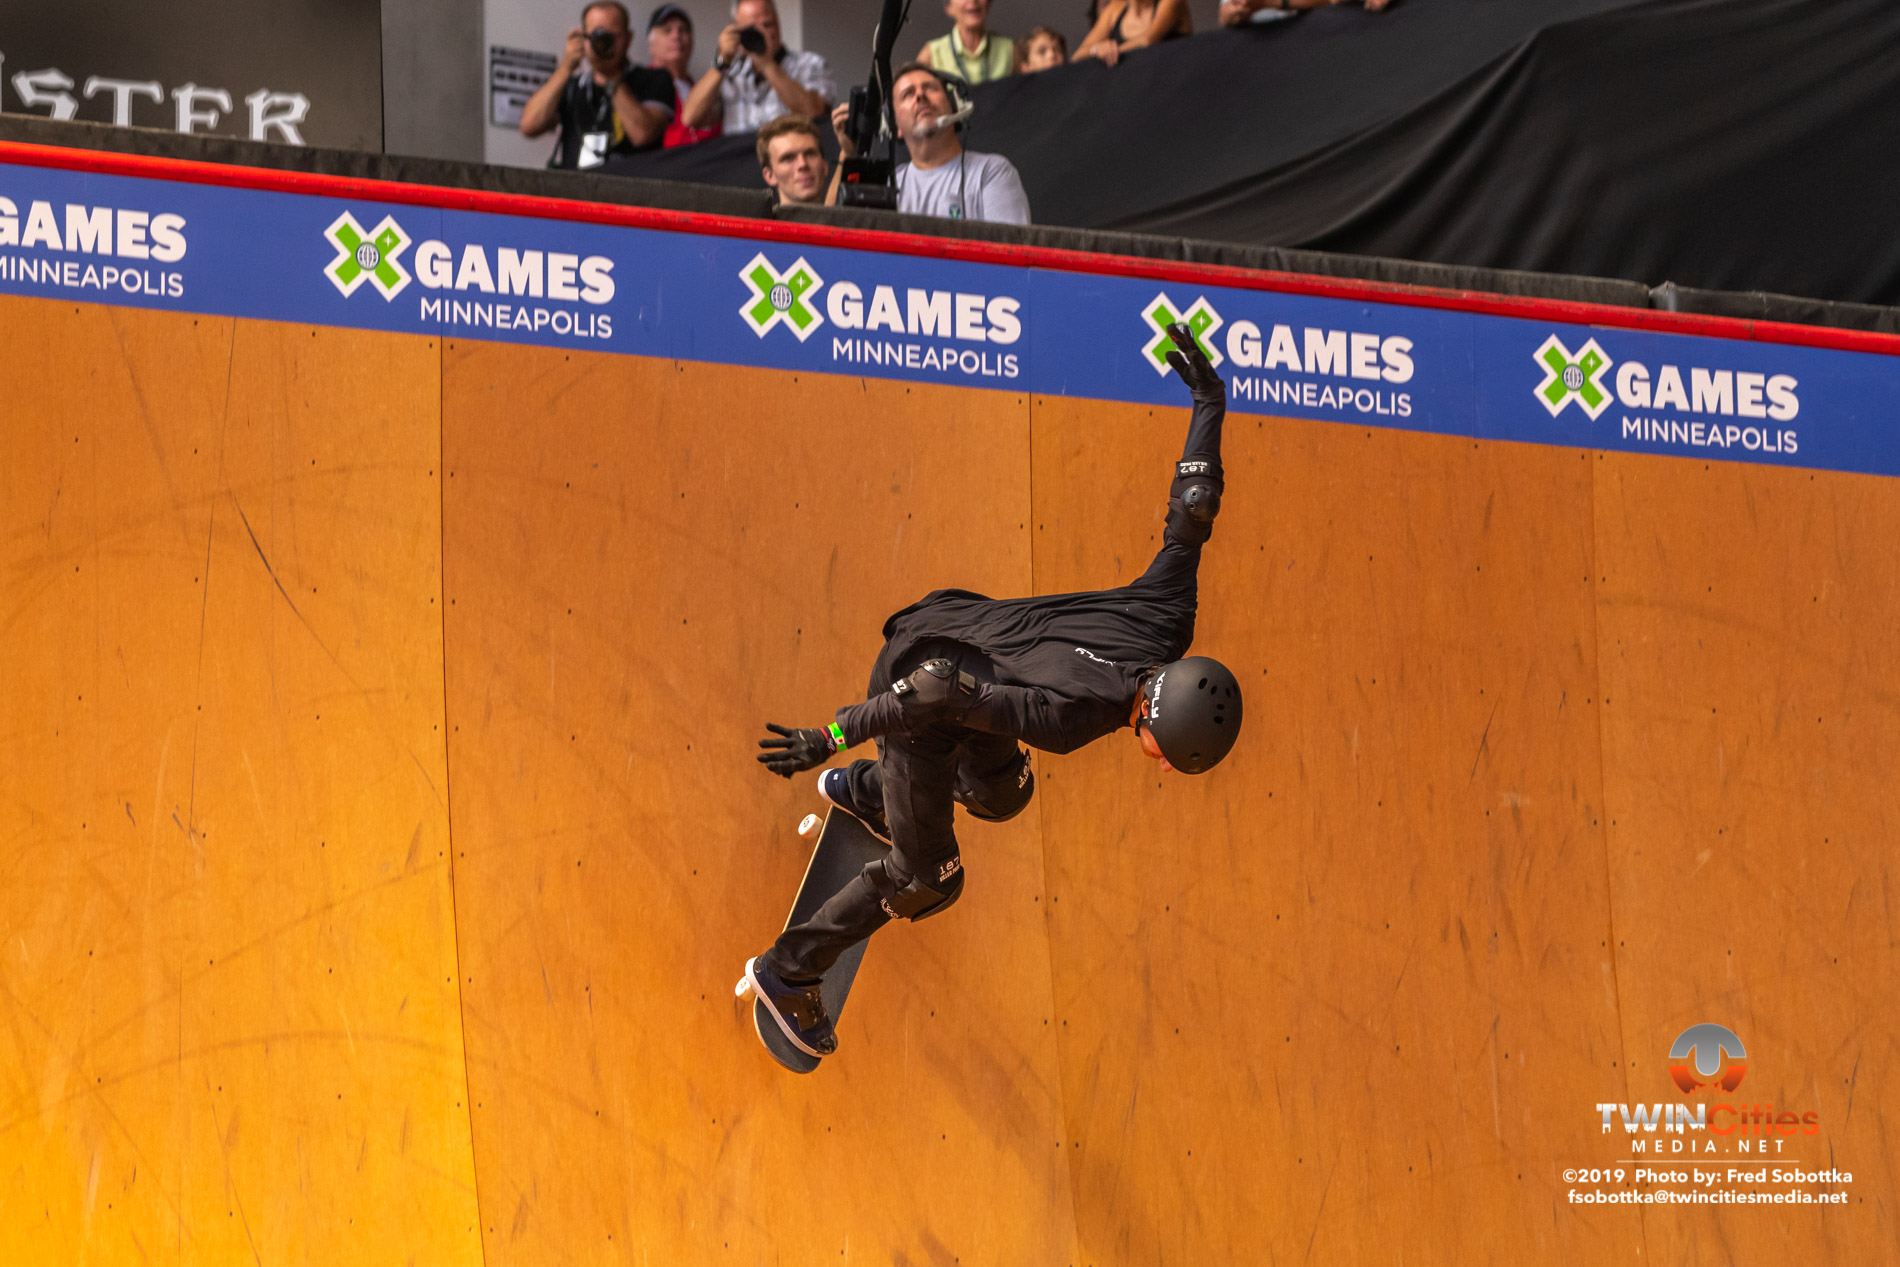 The-Real-Cost-Skateboard-Big-Air-09